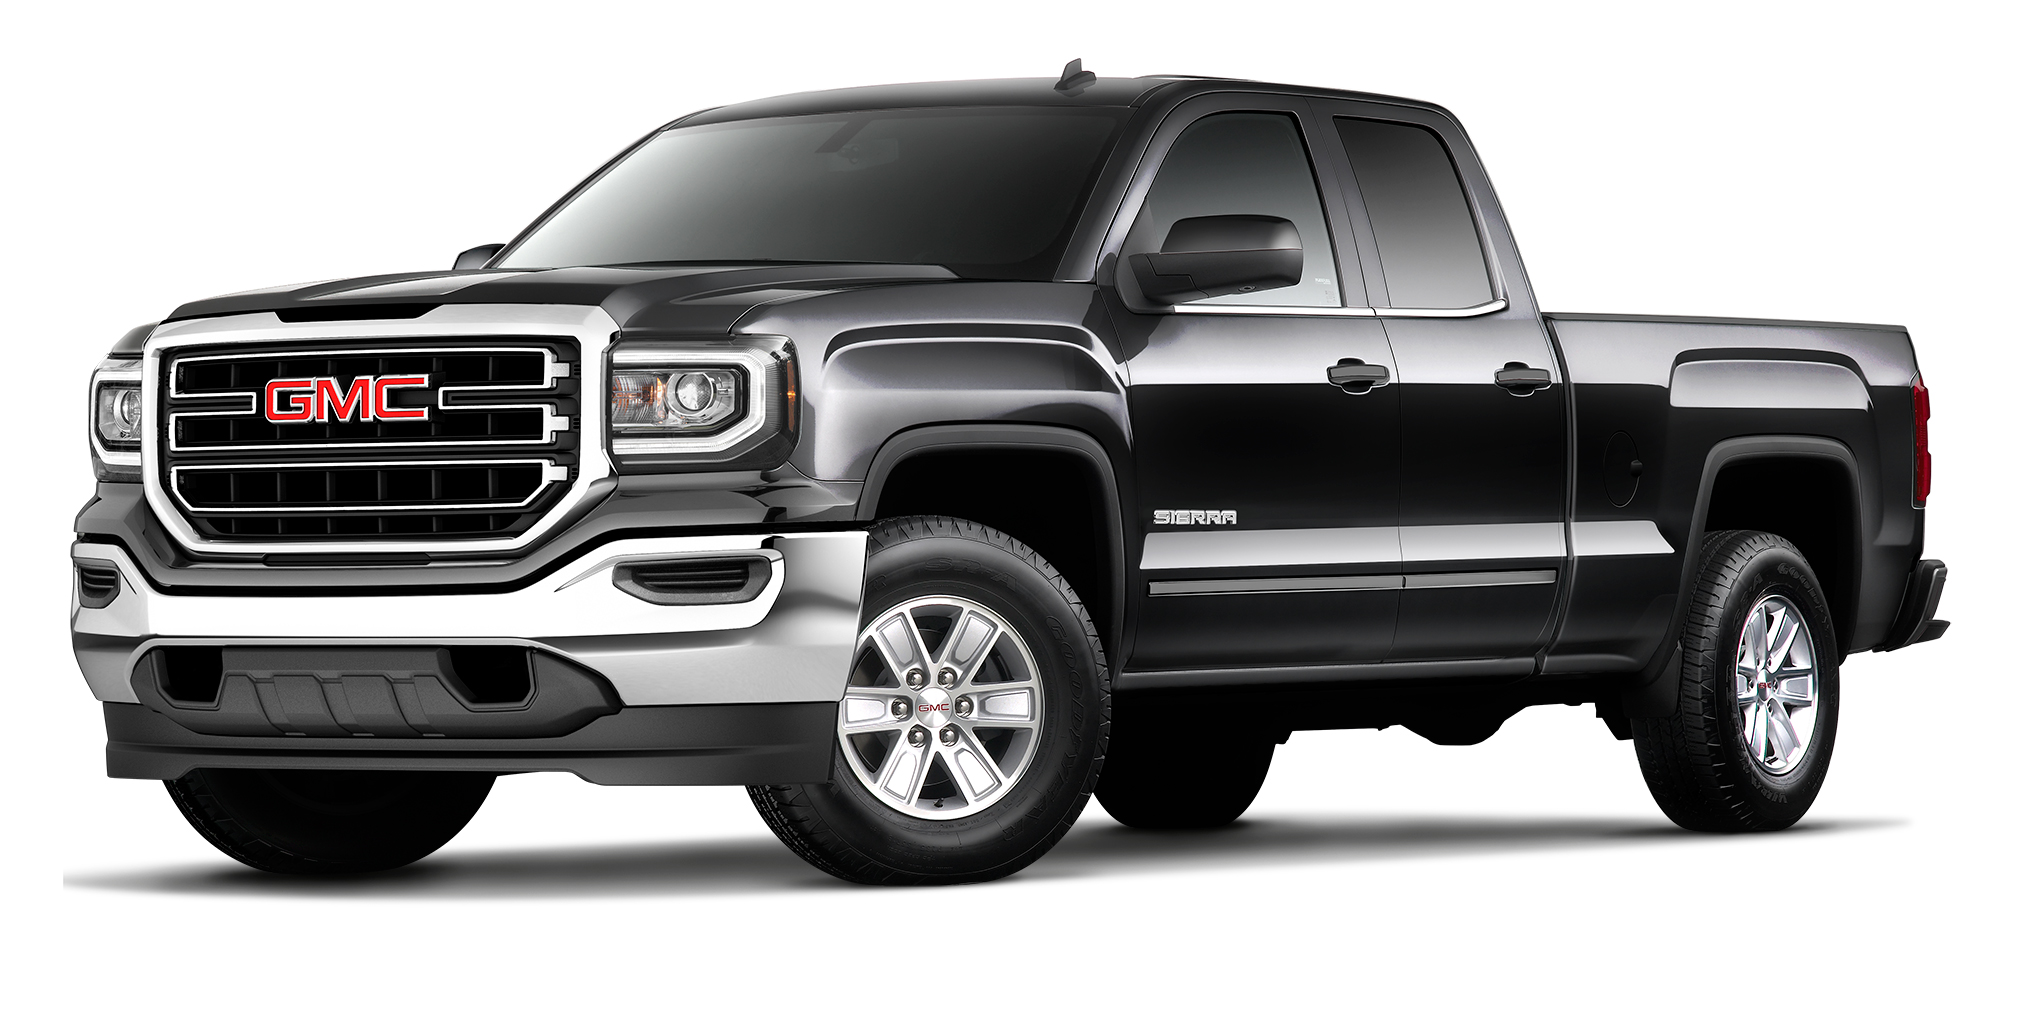 2017 gmc sierra winnipeg gmc sierra 1500 details specs gauthier. Black Bedroom Furniture Sets. Home Design Ideas